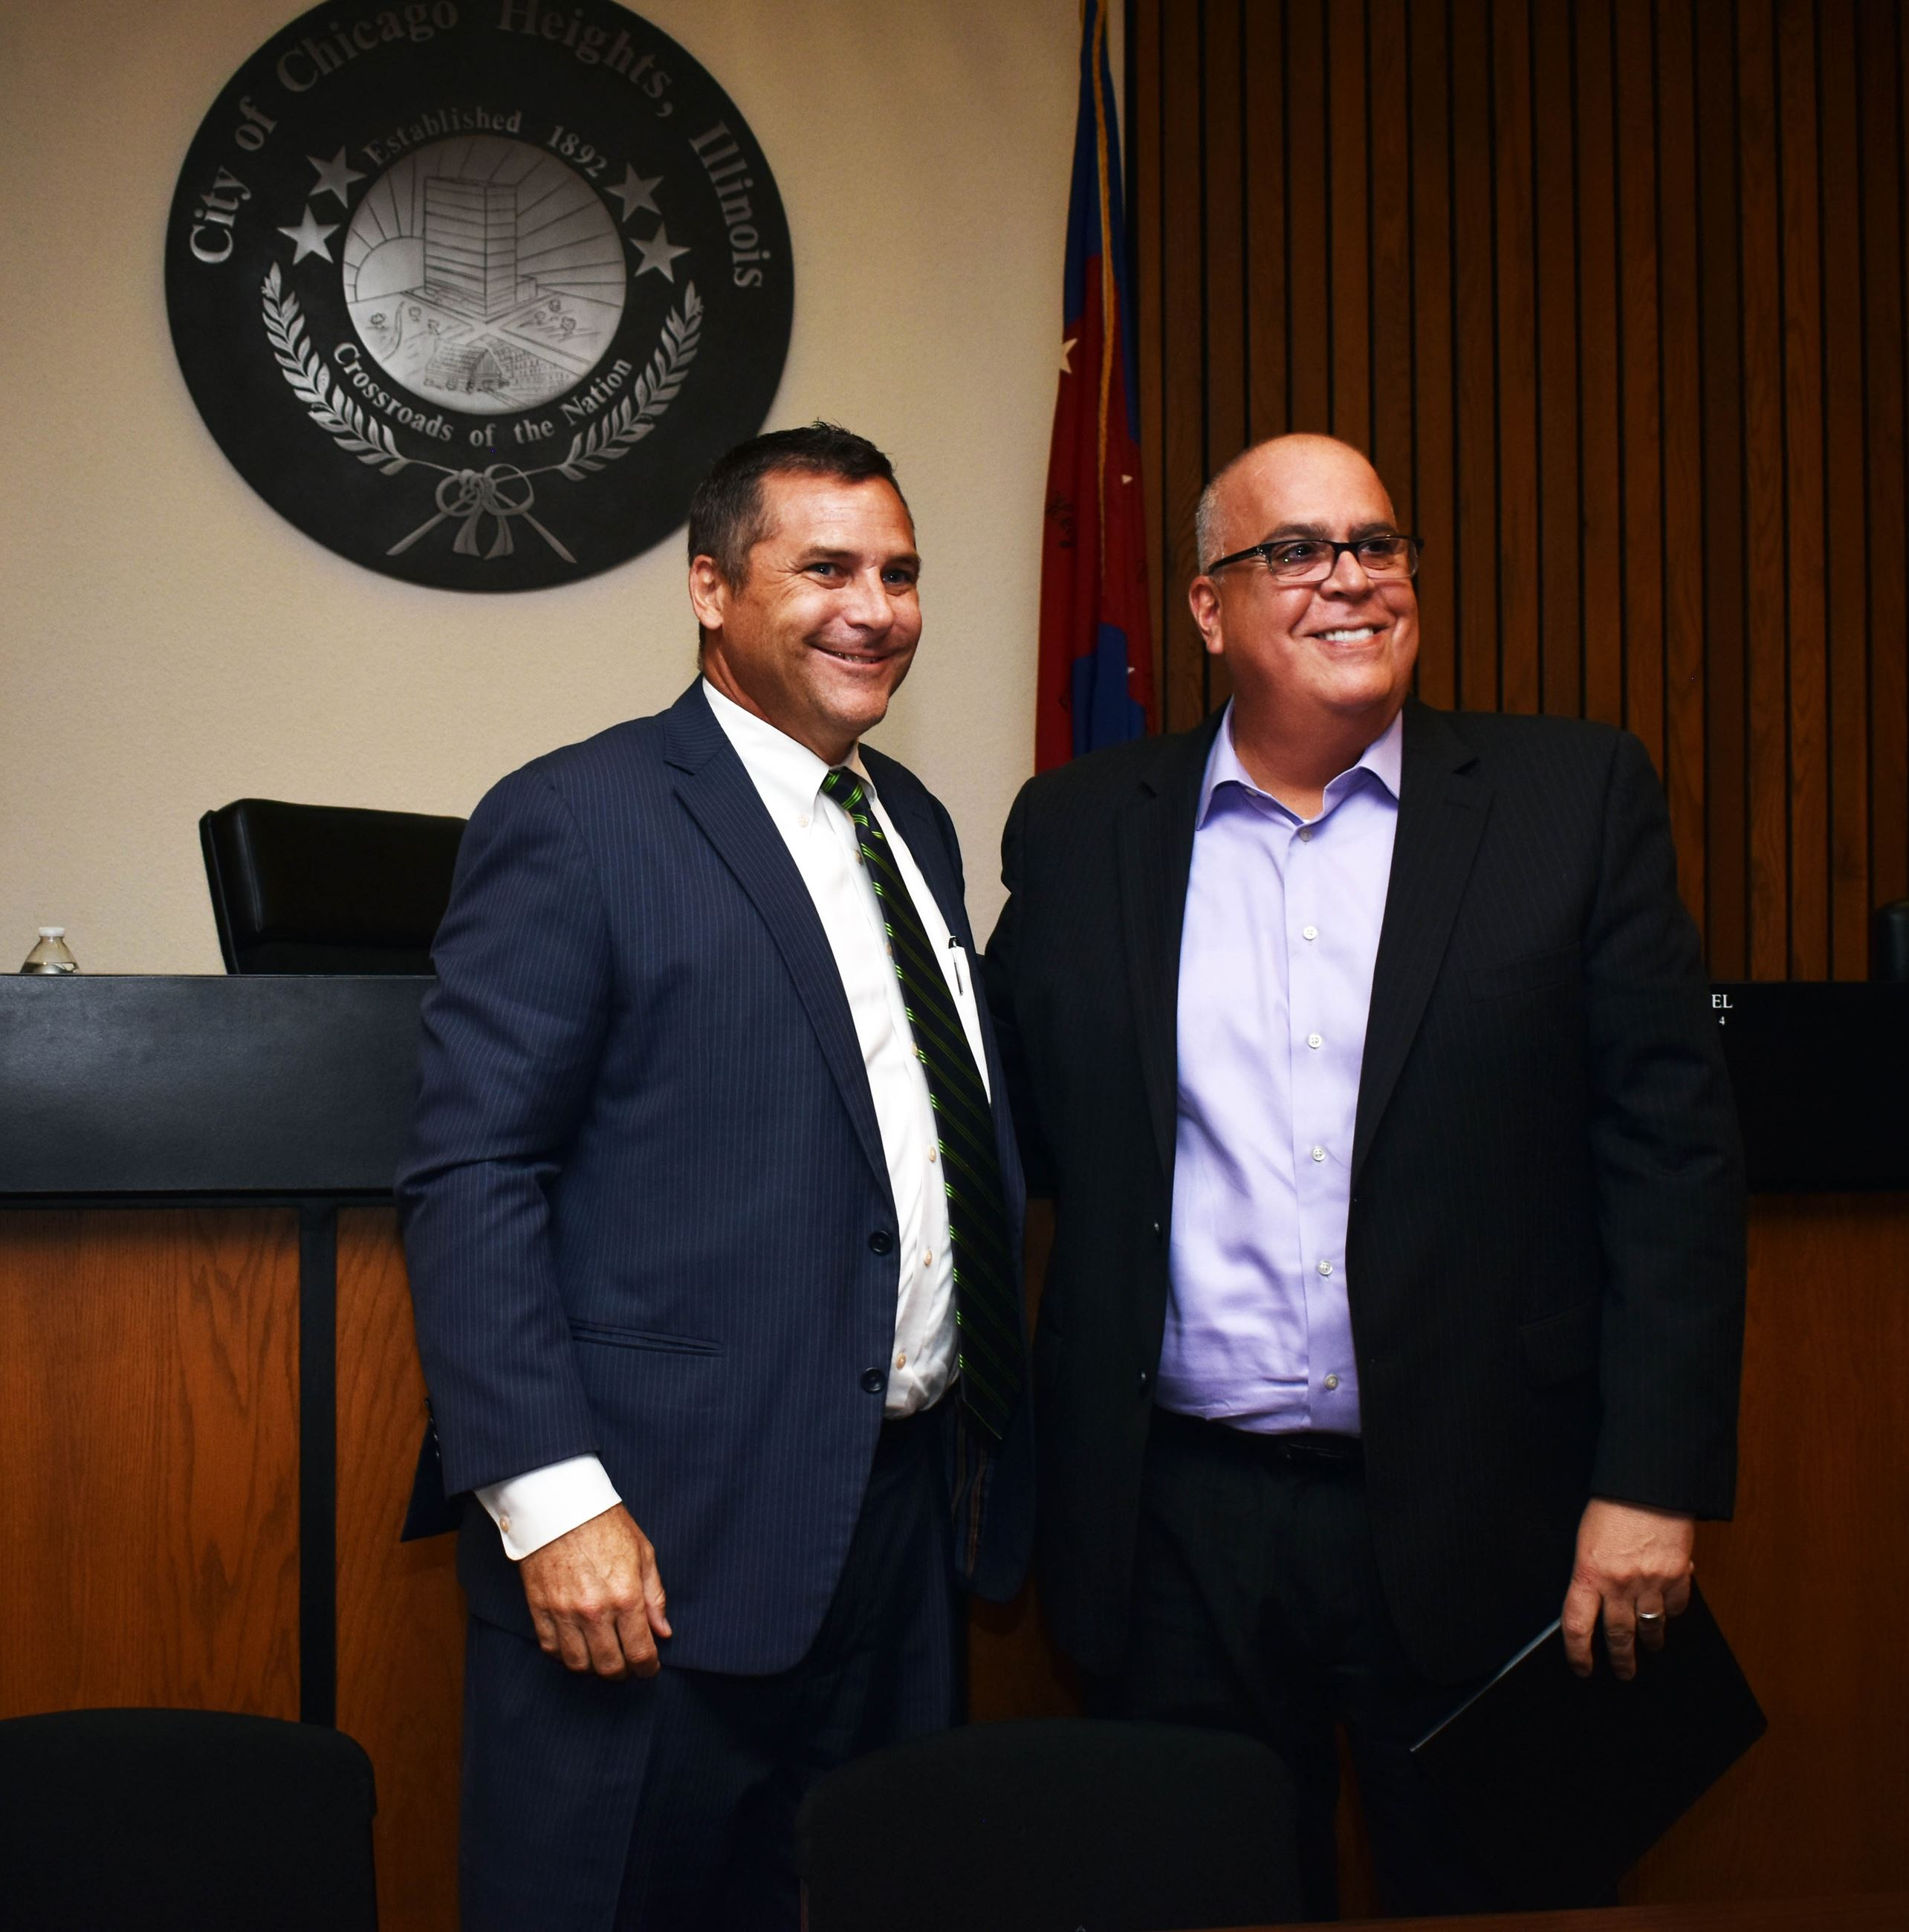 Mayor Gonzalez and Mayor McDermott